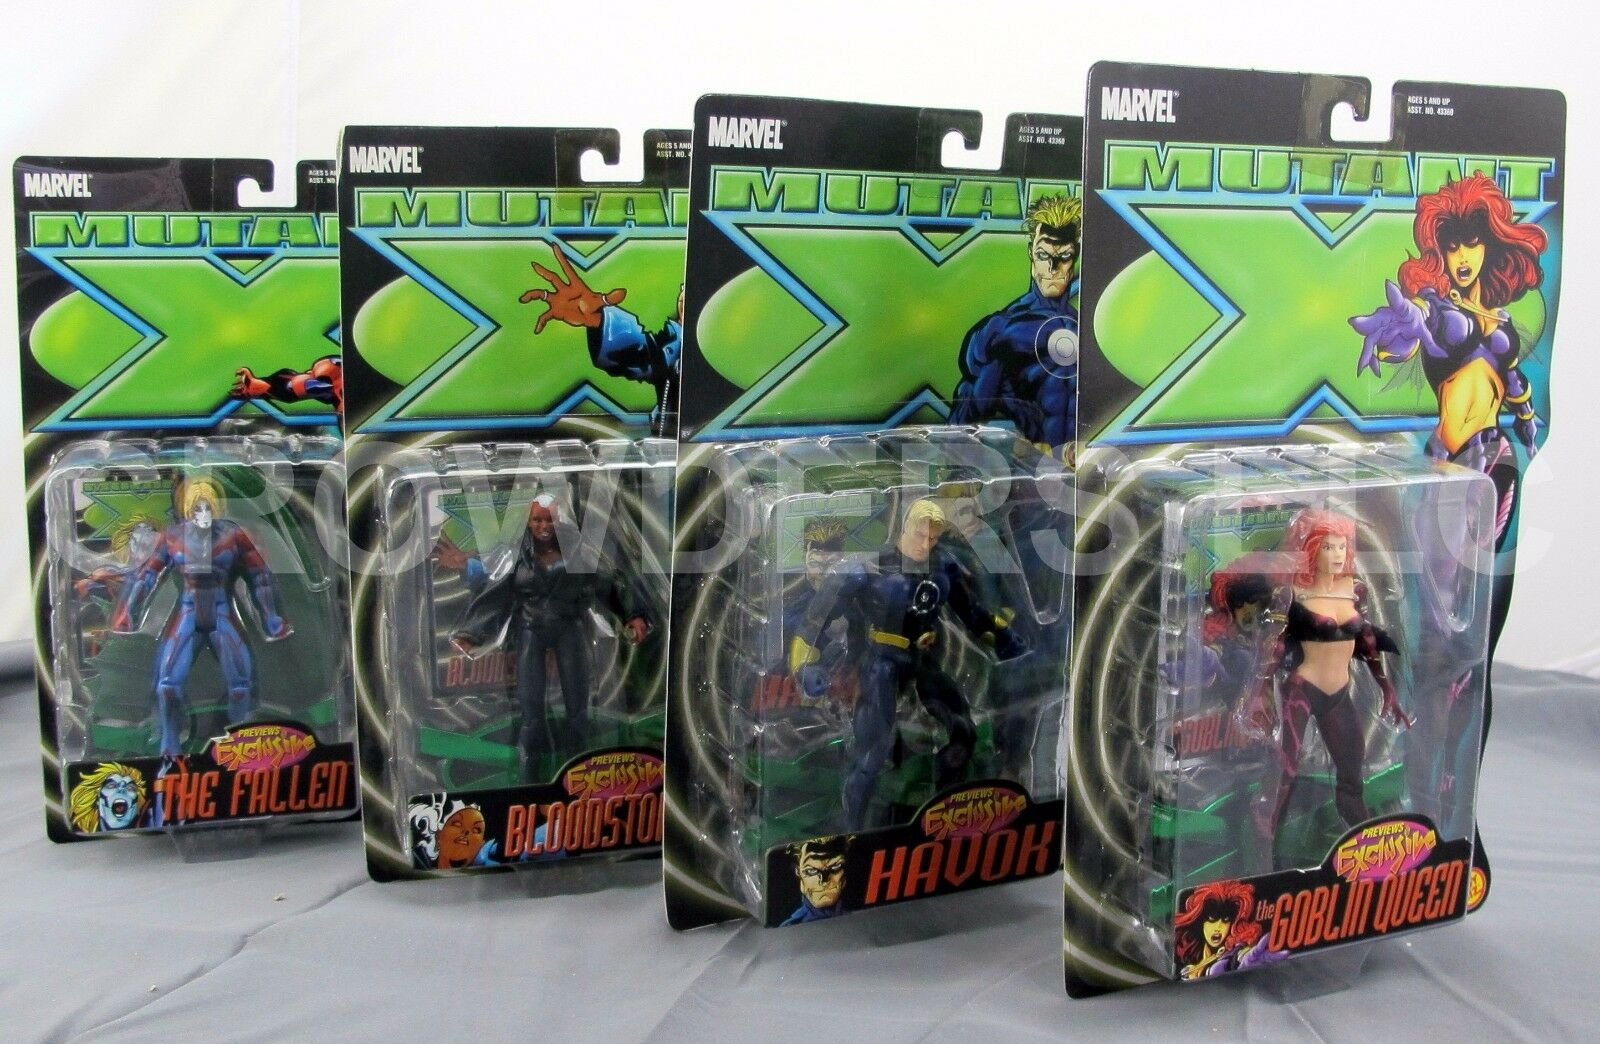 Marvel Mutant X Complete Set Havok Goblin Queen Fallen & BloodStorm Brand New 01